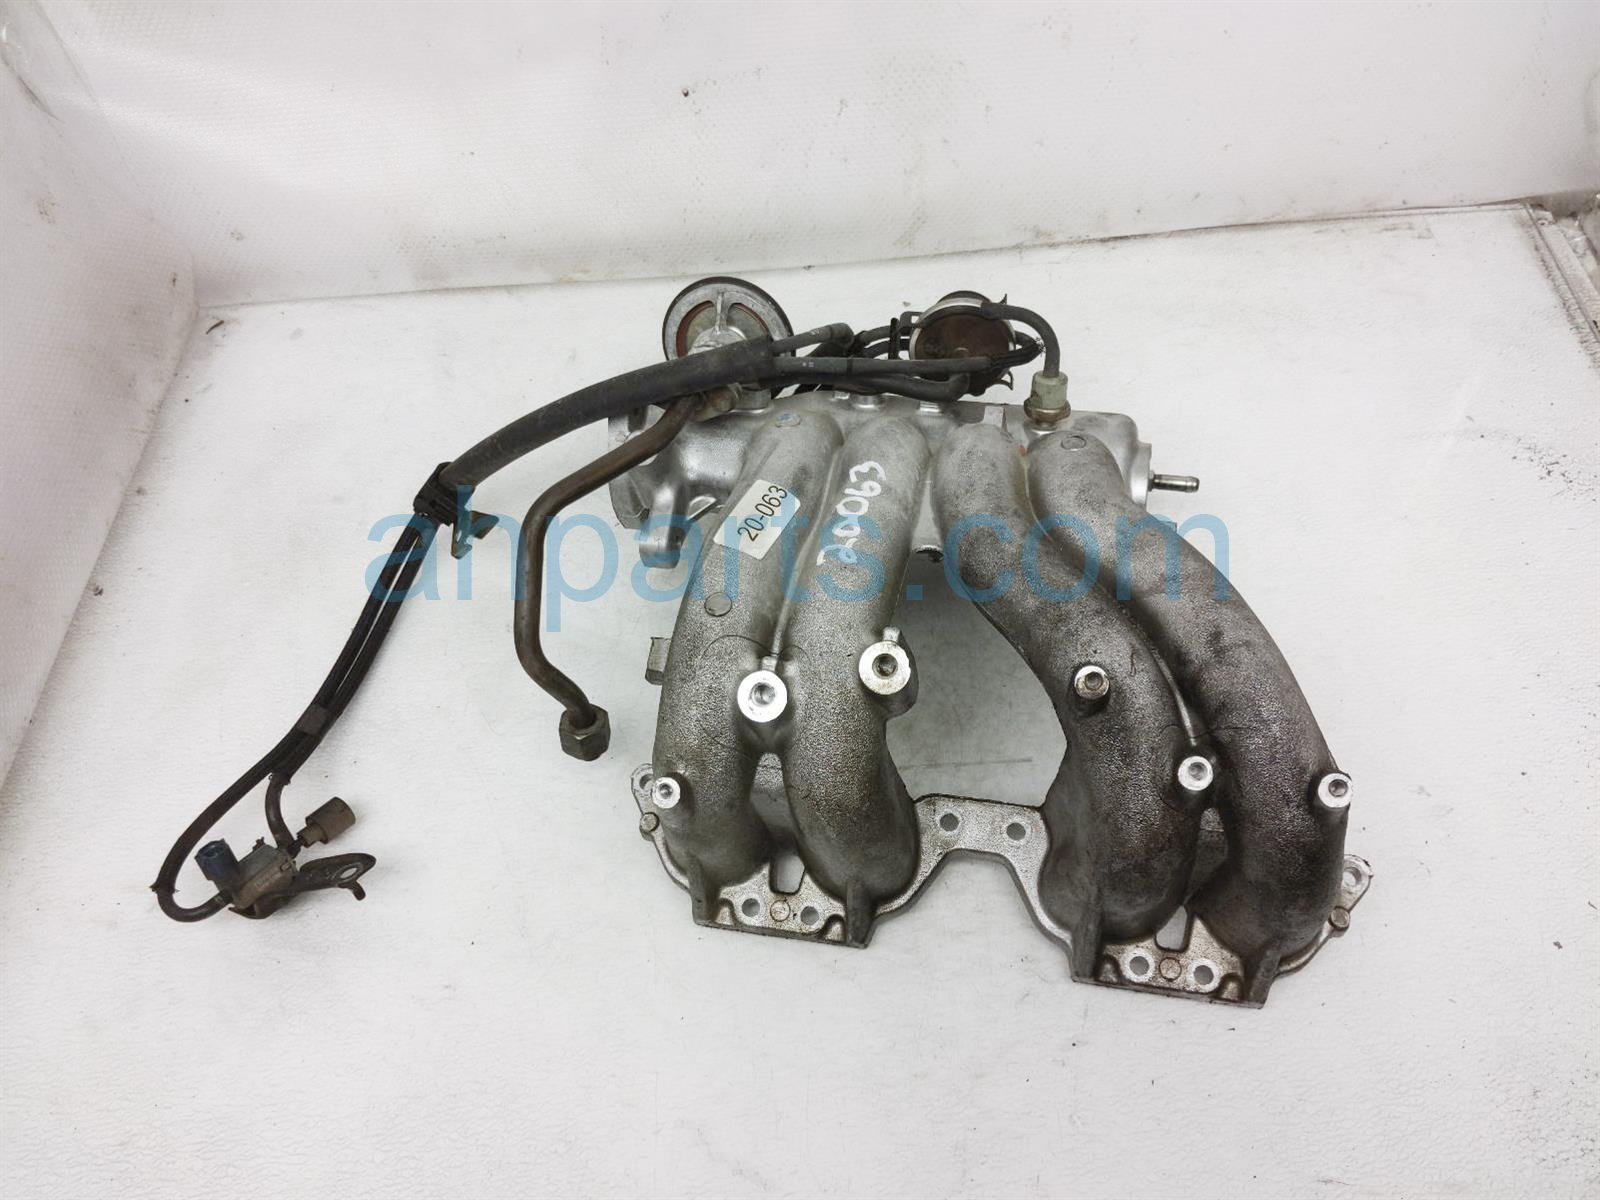 2001 Toyota Camry Intake Manifold 17101 74311 Replacement